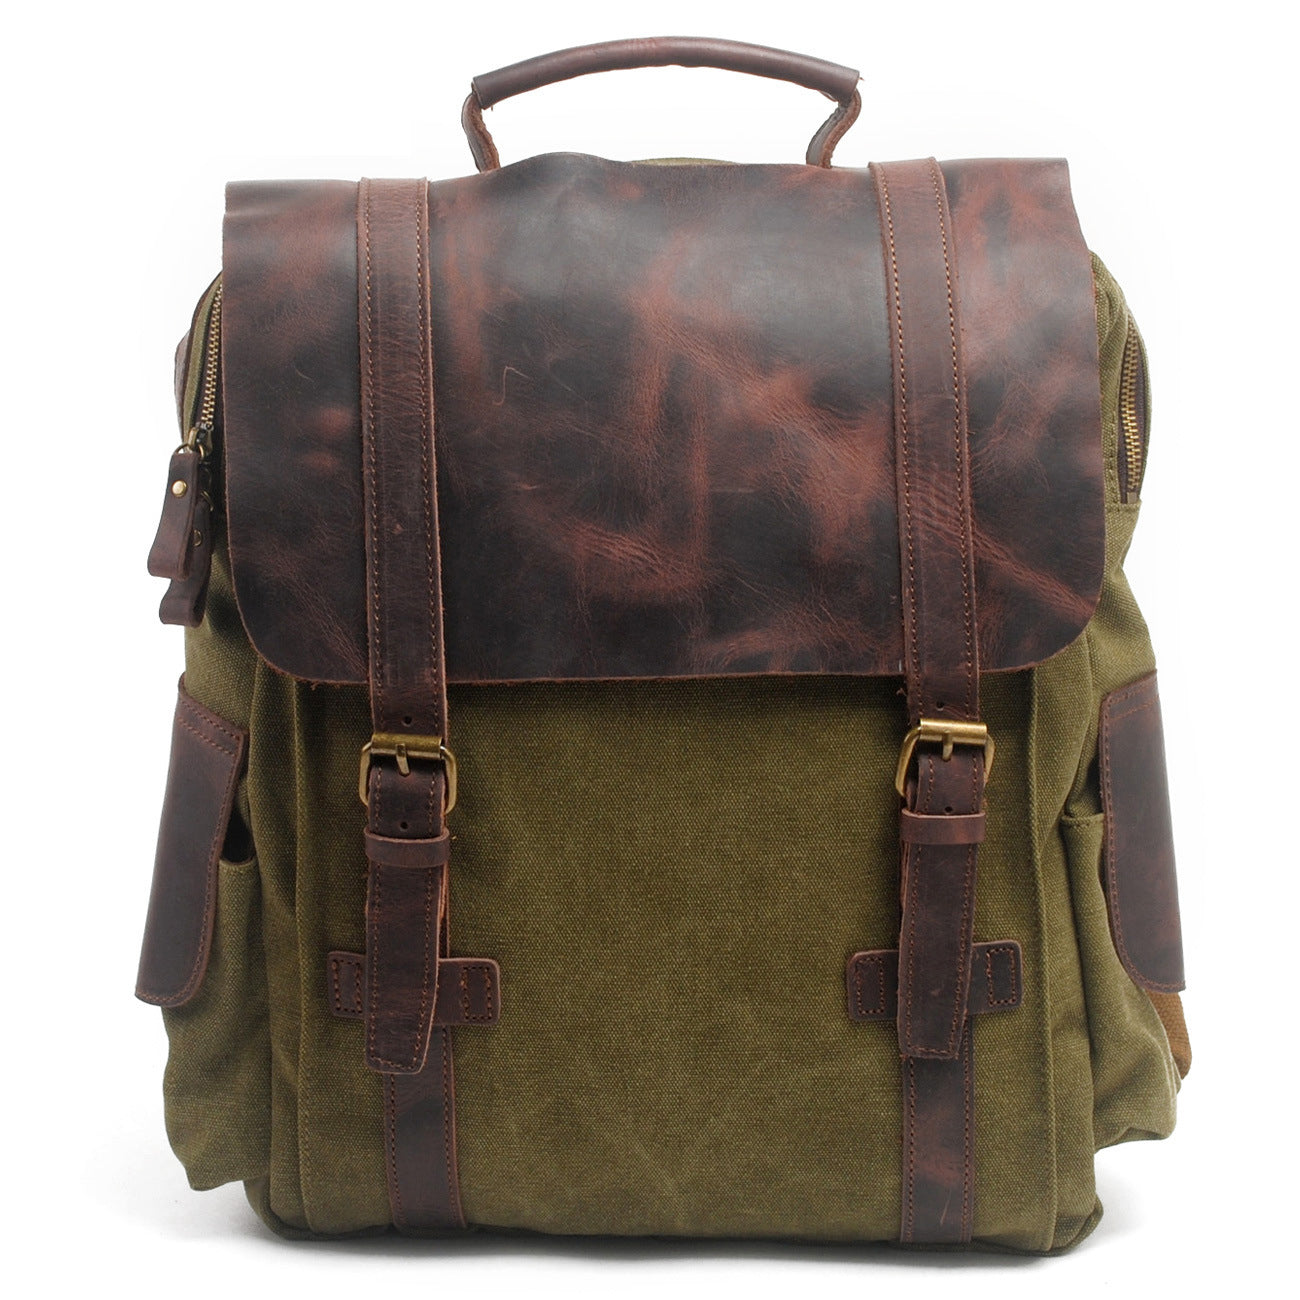 MBL038 Wholesale luxury waterproof canvas leather men bags backpack